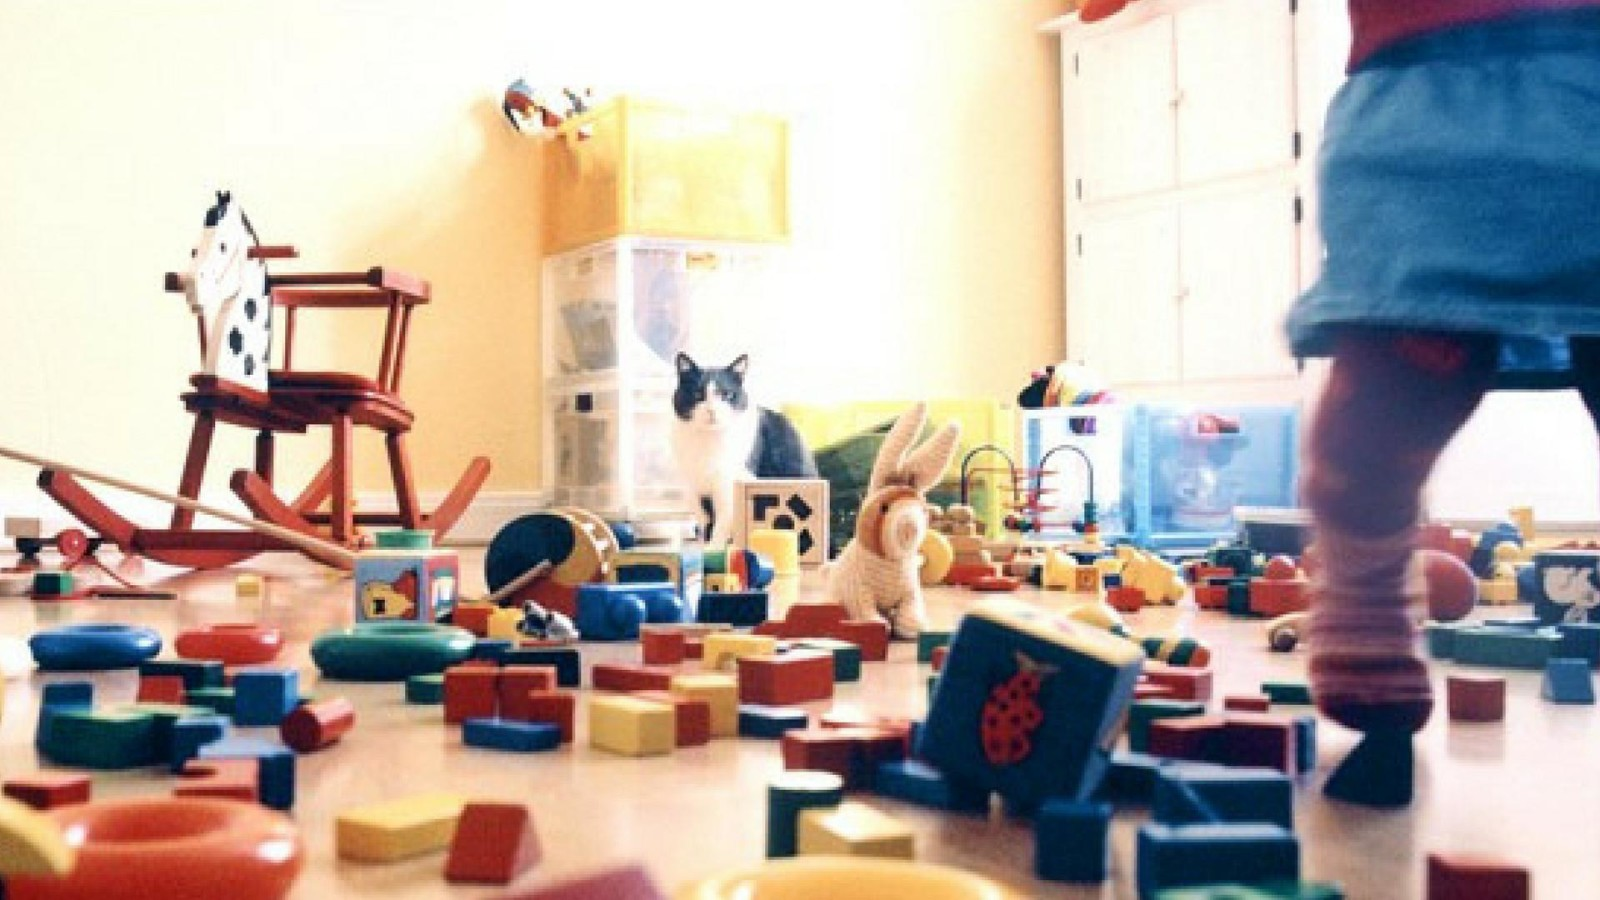 Tired Of Toys Invasion? 8 Tips For A Clean And Organized Home